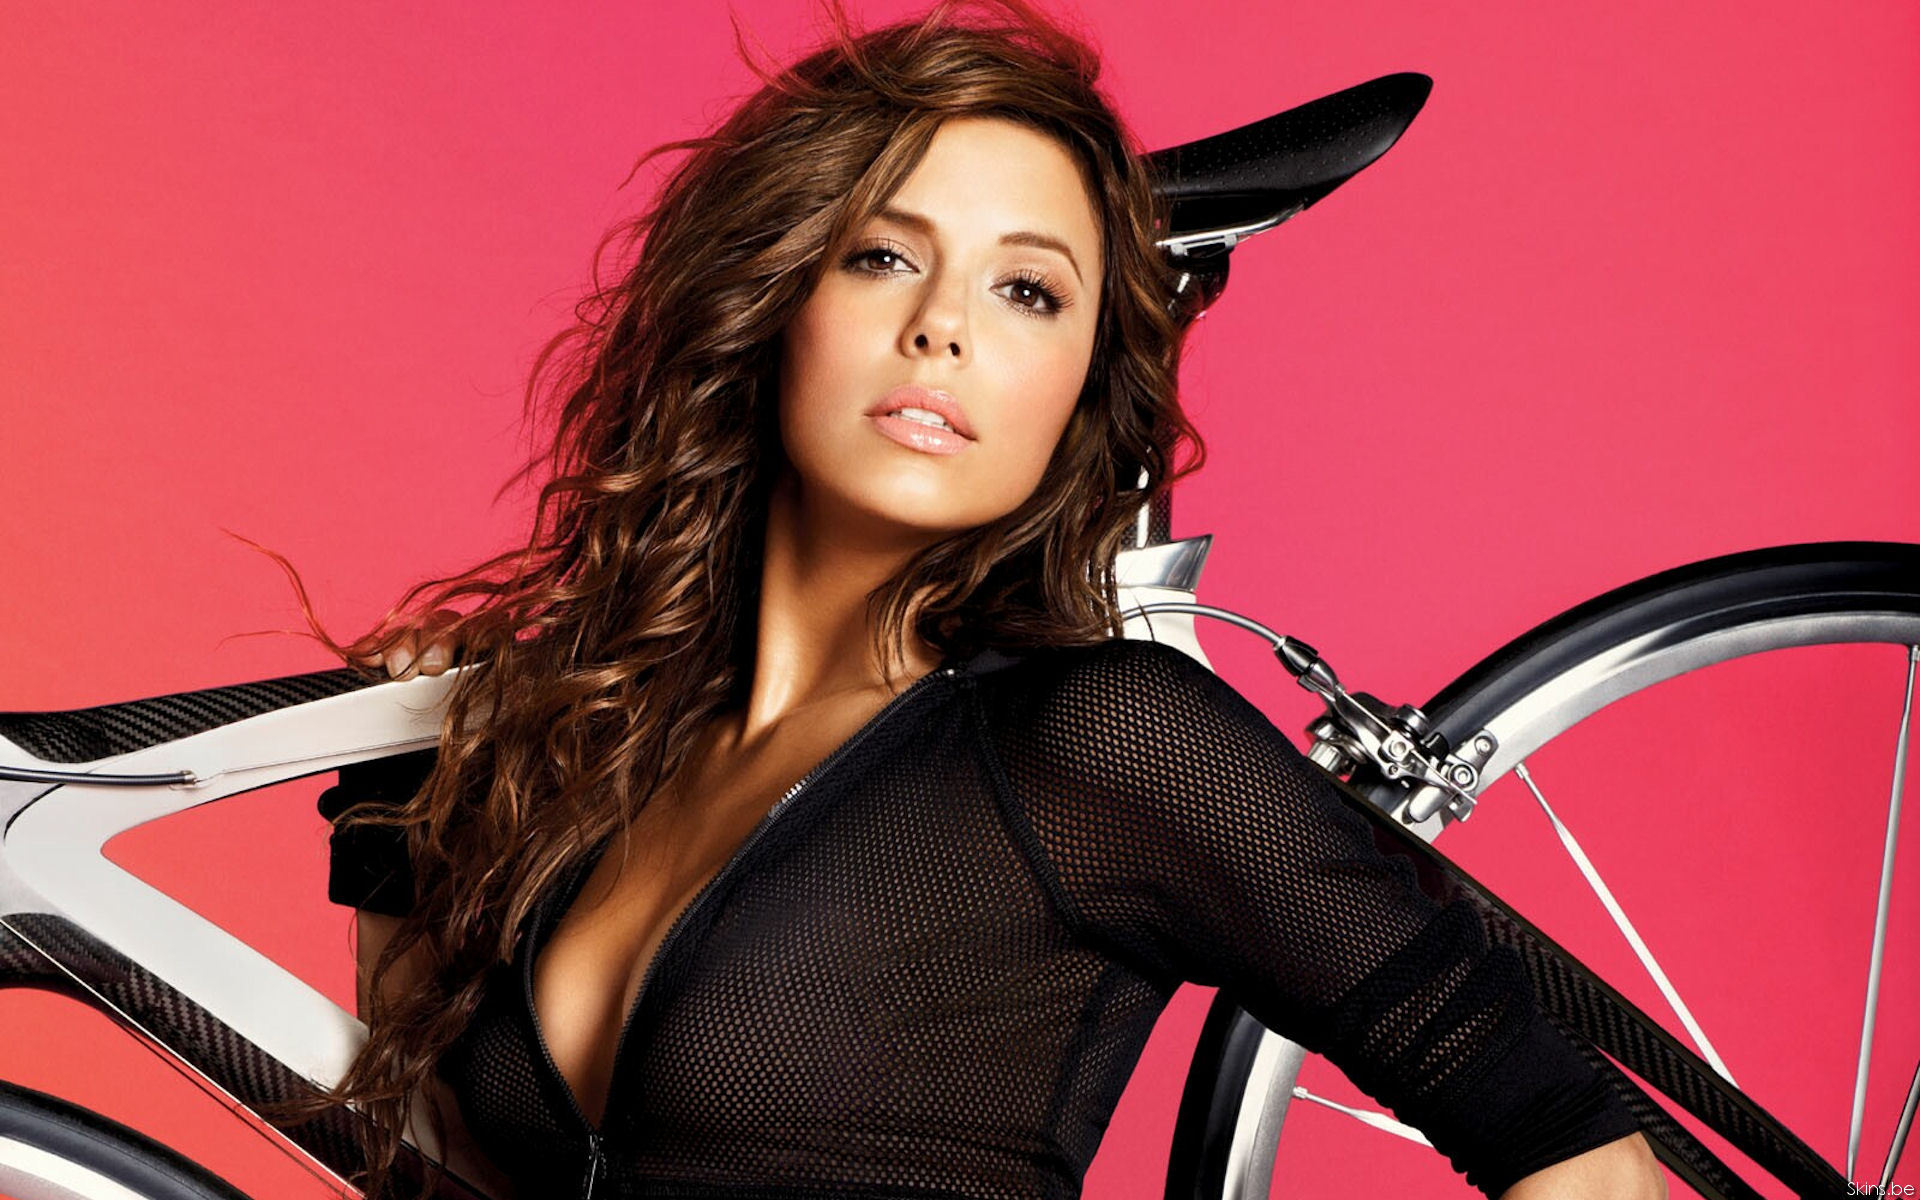 Eva Longoria Full HD